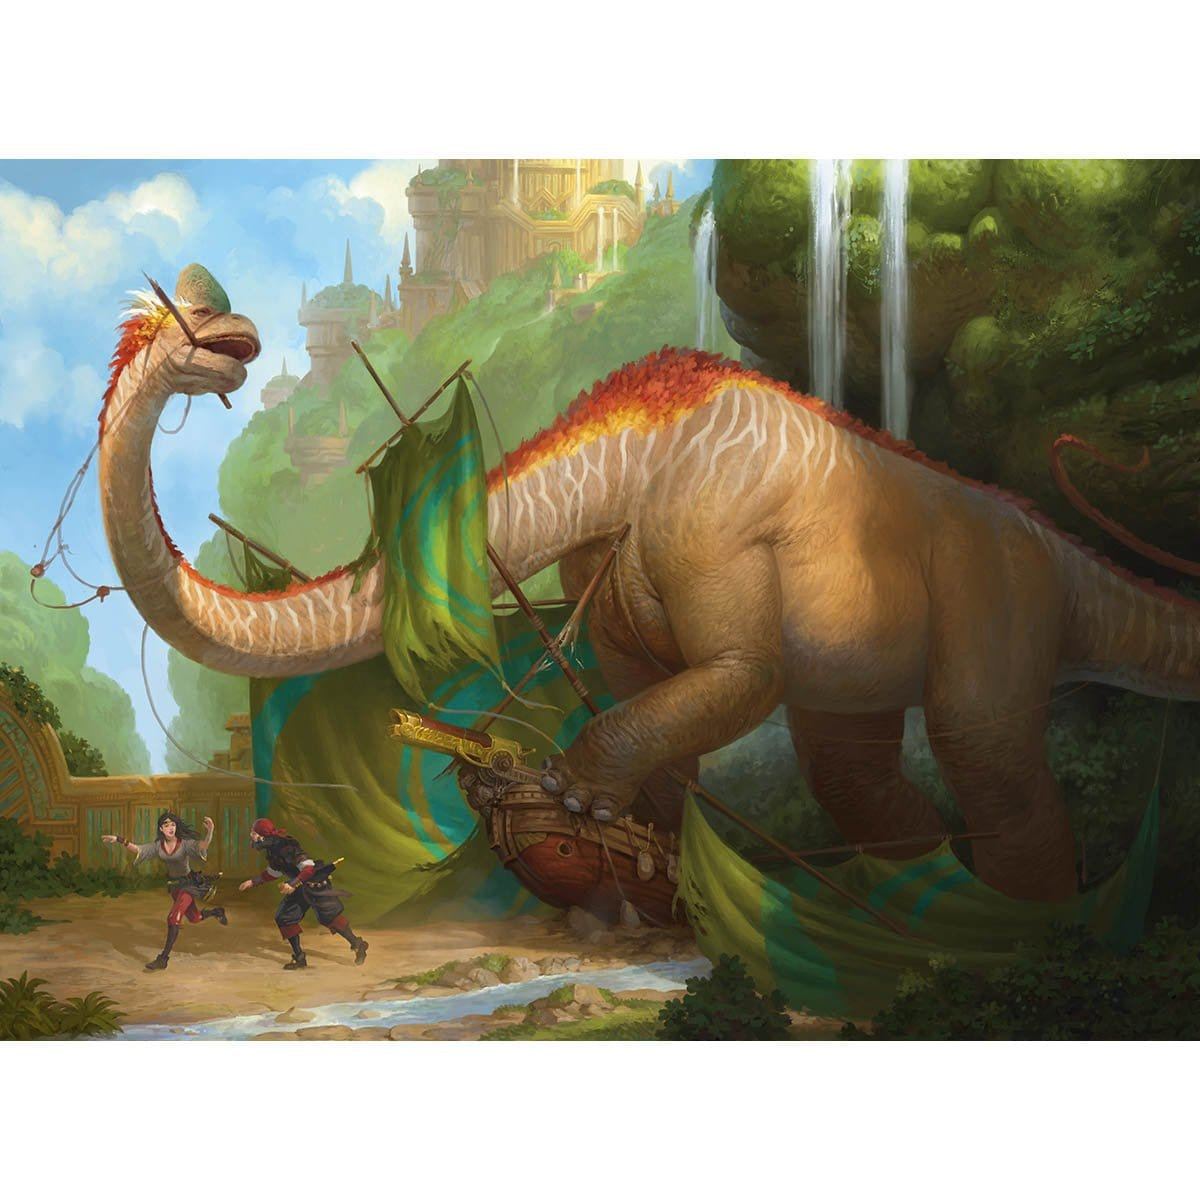 Thrashing Brontodon Print - Print - Original Magic Art - Accessories for Magic the Gathering and other card games